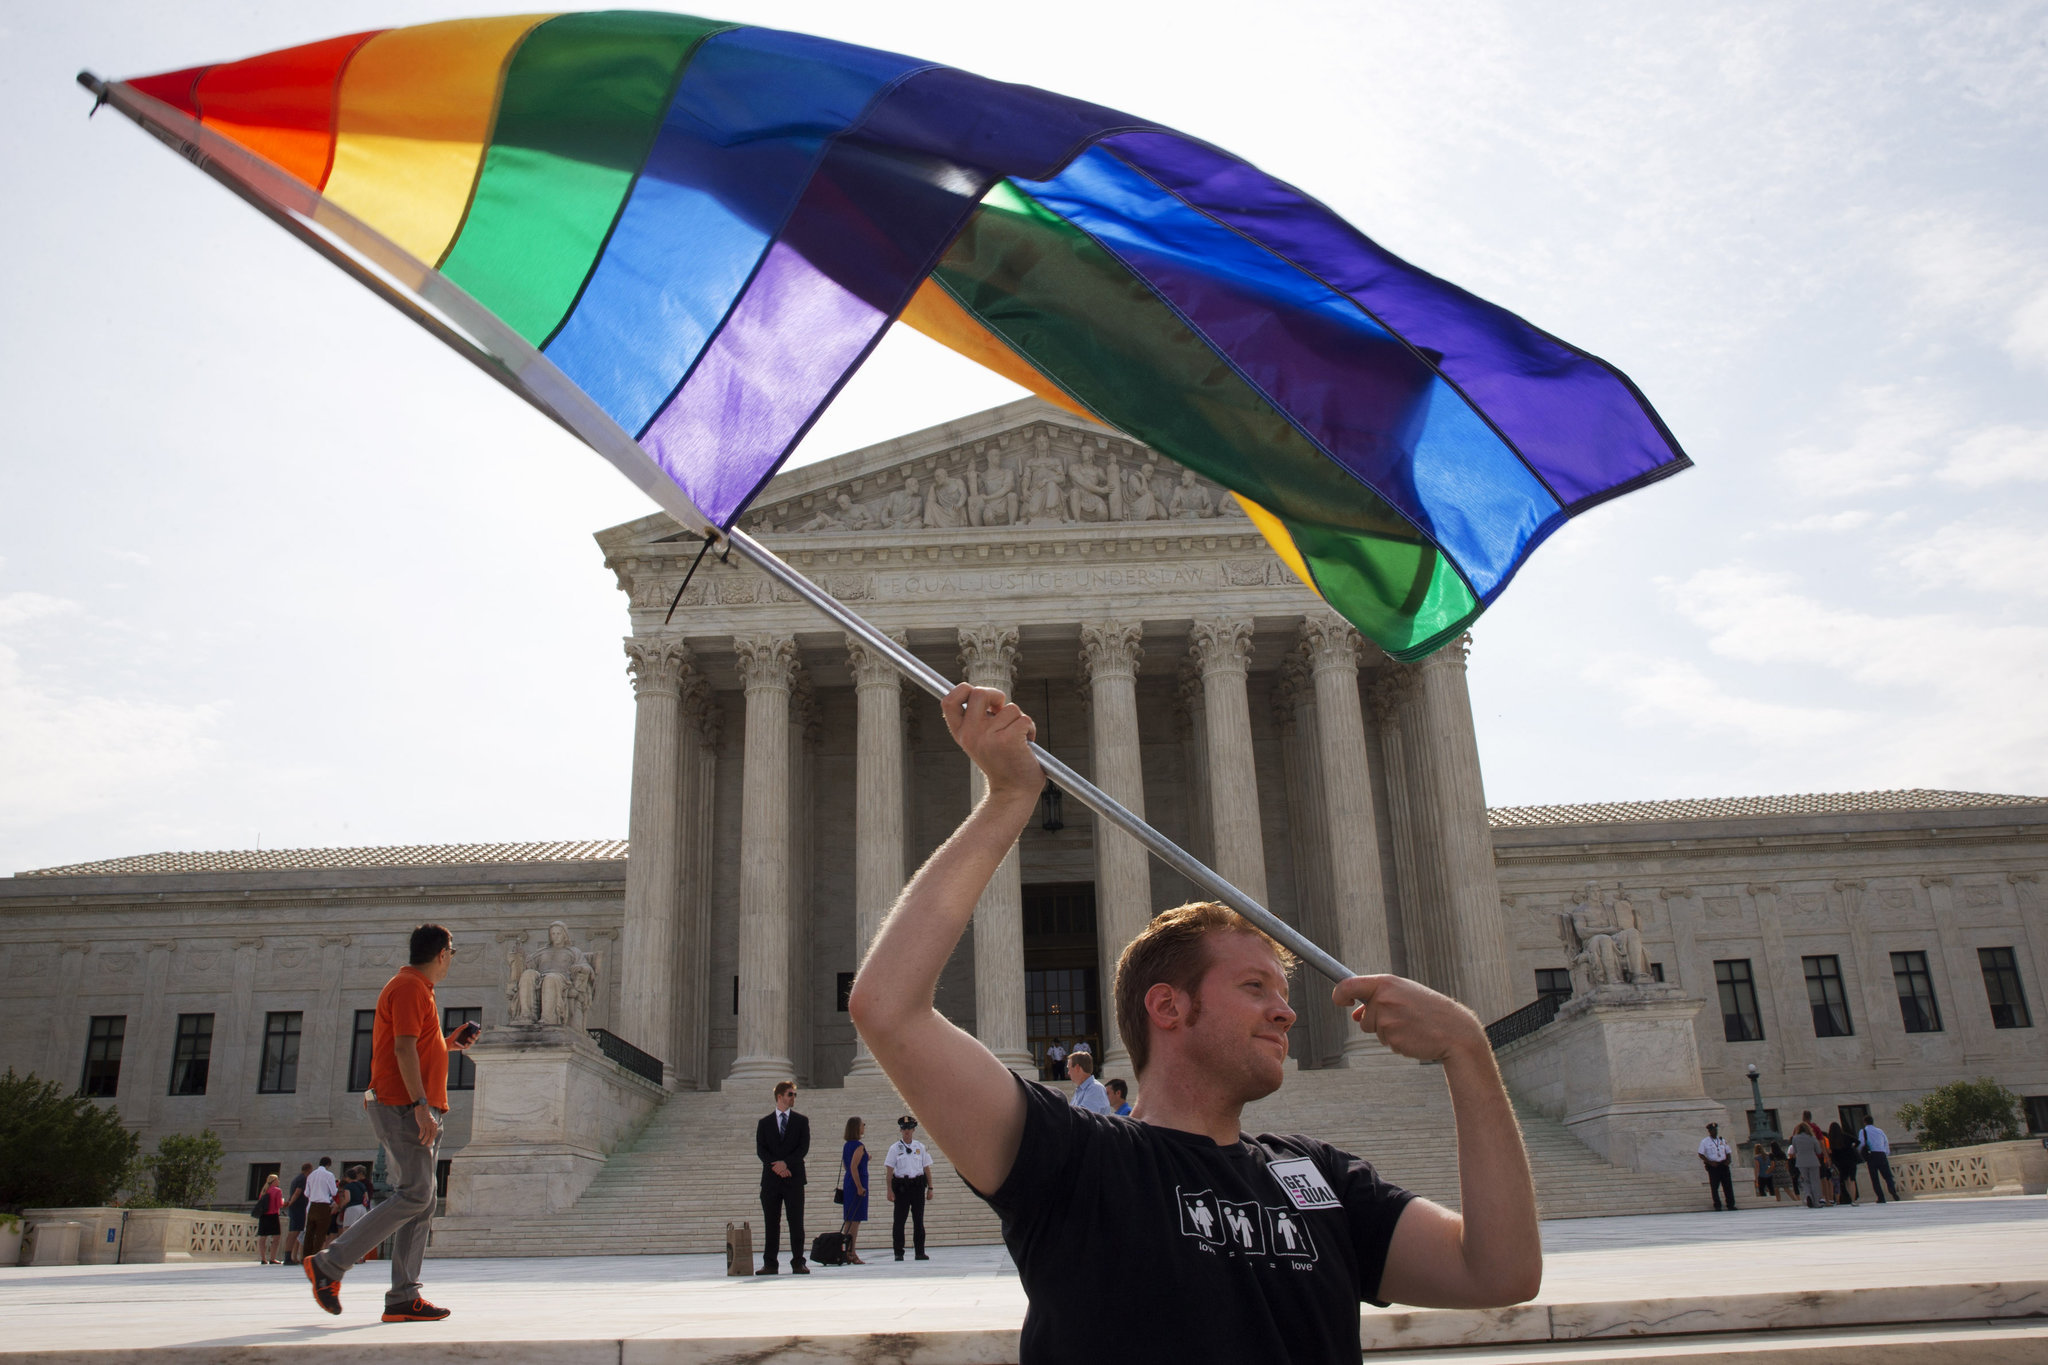 law human rights in america gay In 1924, chicago postal clerk henry gerber formed the society for human rights, considered the first american gay-rights group gerber was soon arrested for being gay.